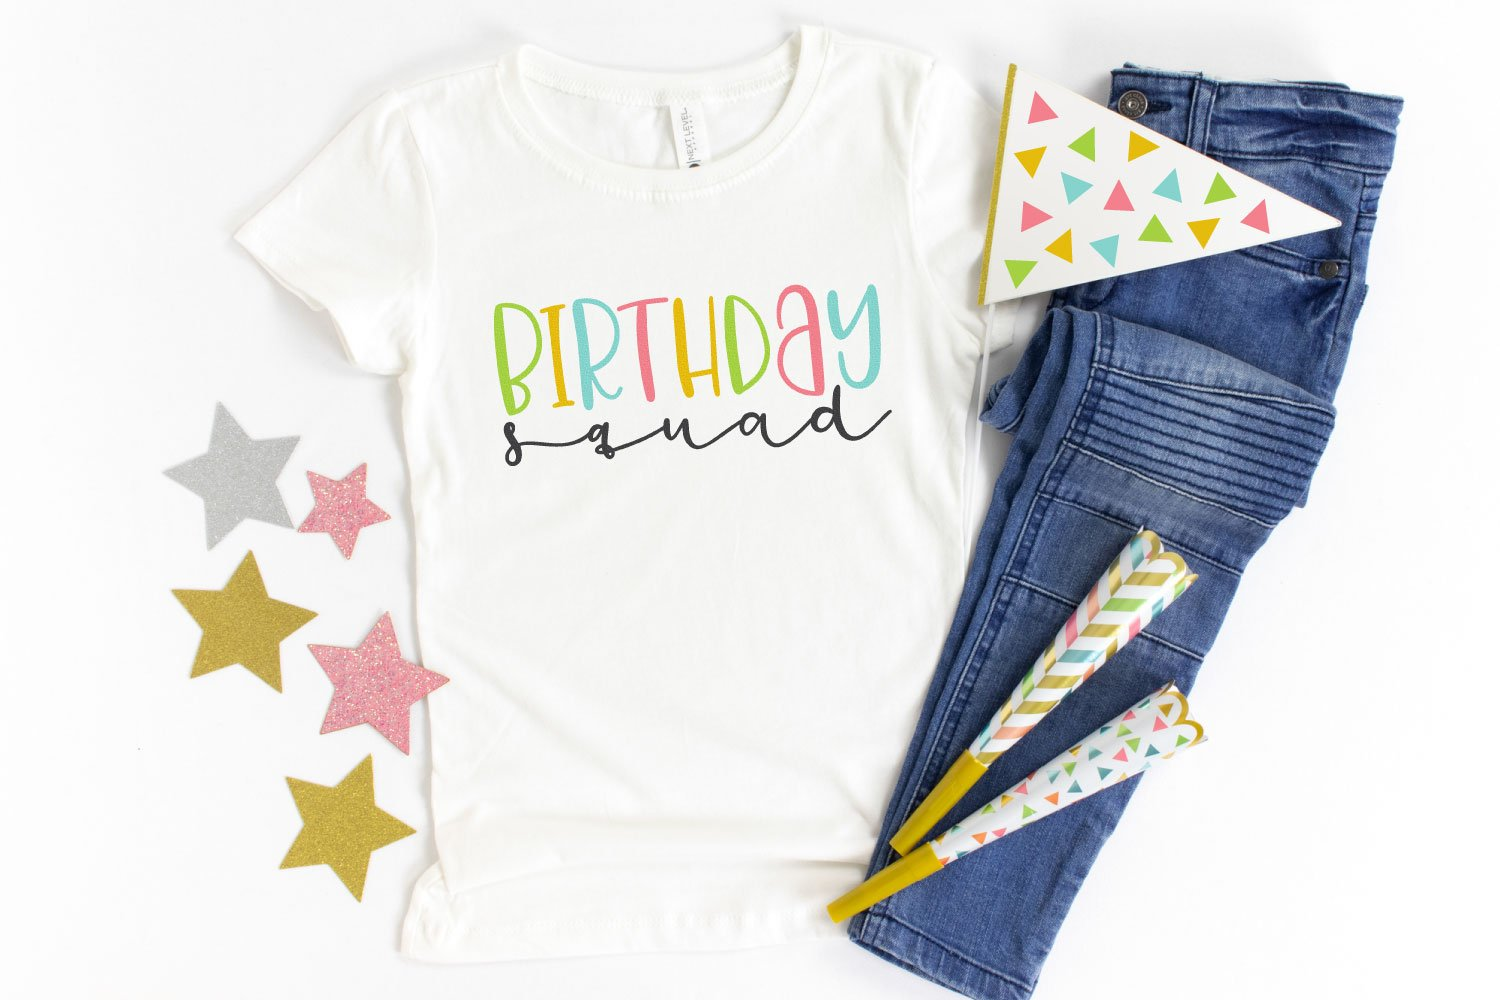 Birthday Squad SVG on a white shirt with party decorations